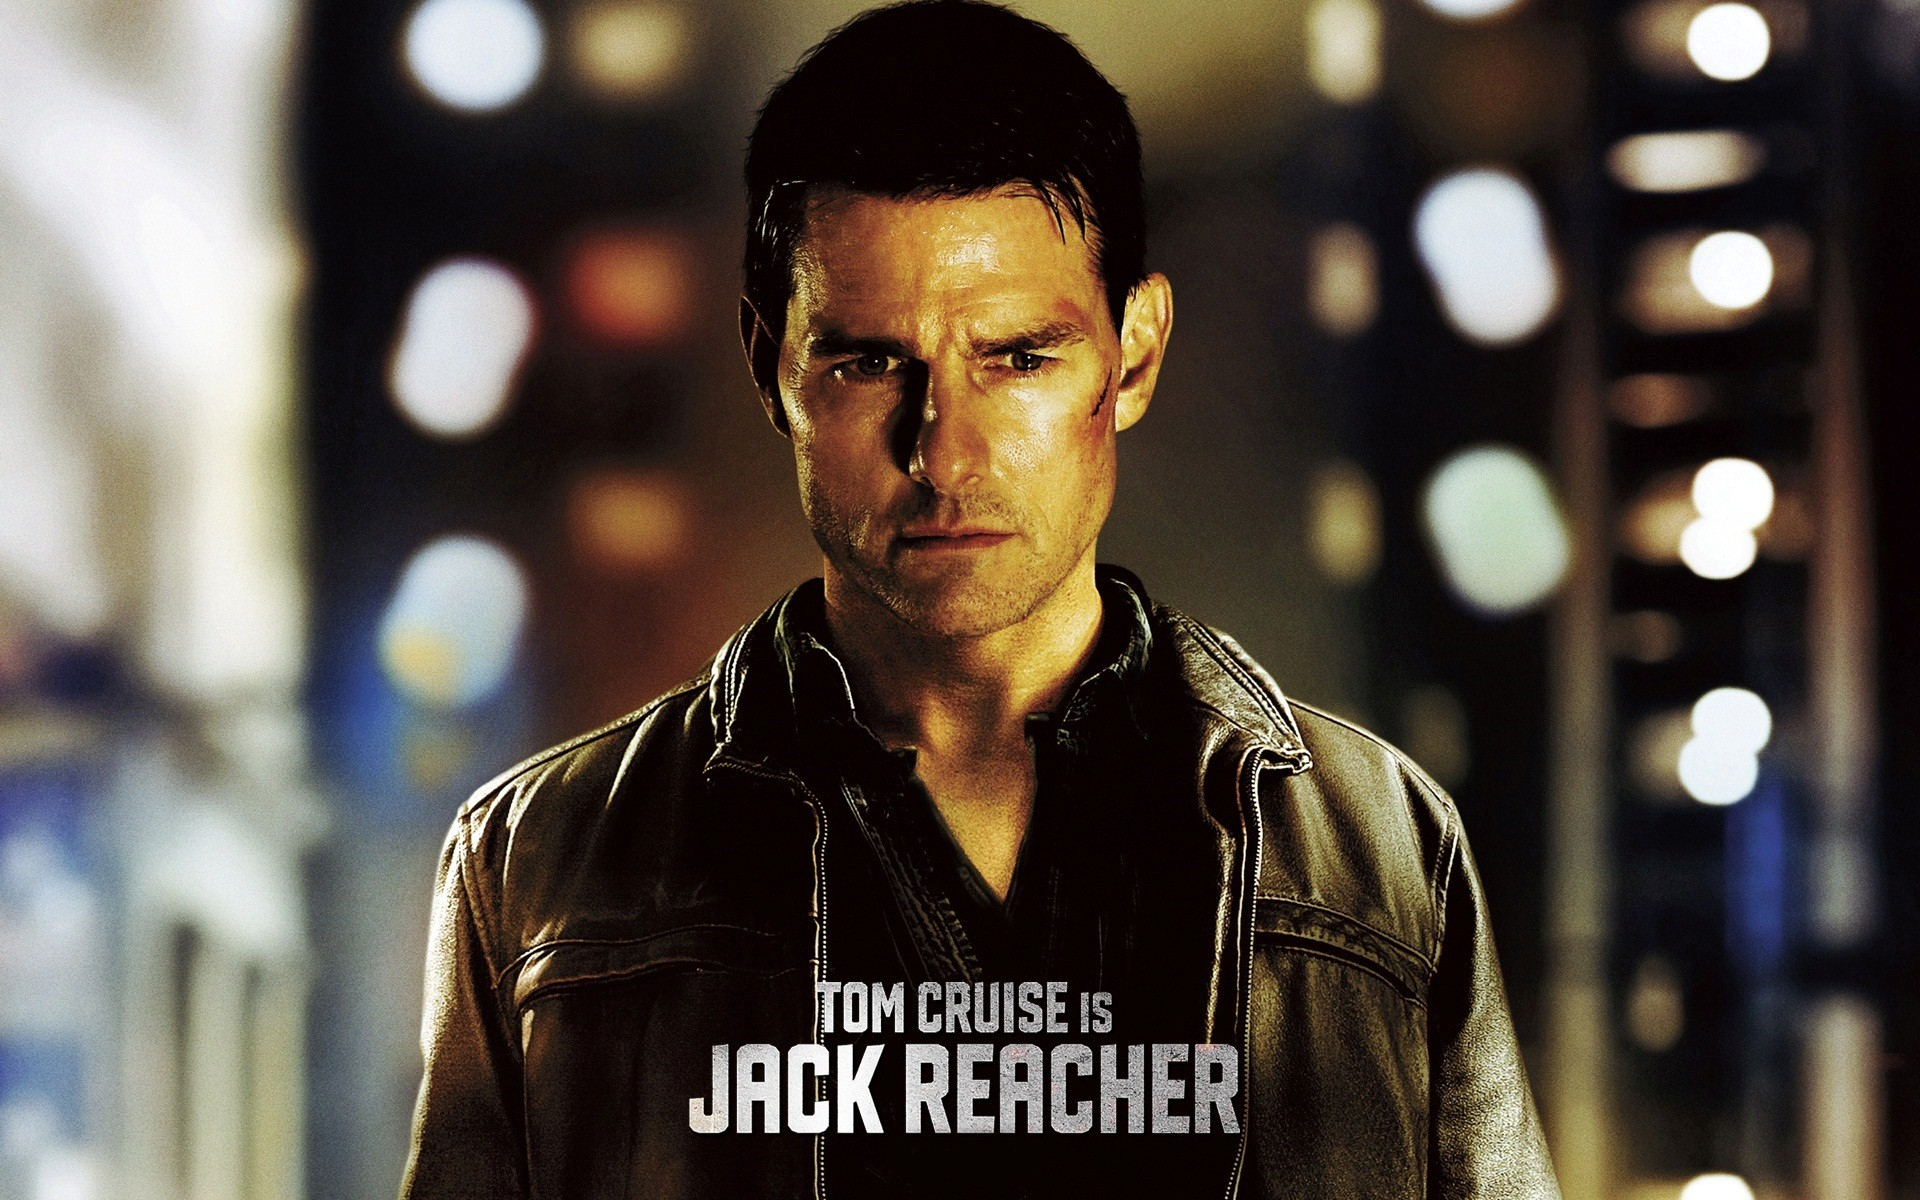 Tom Cruise Movie Jack Reacher Wallpaper HD Wallpapers 1920x1200